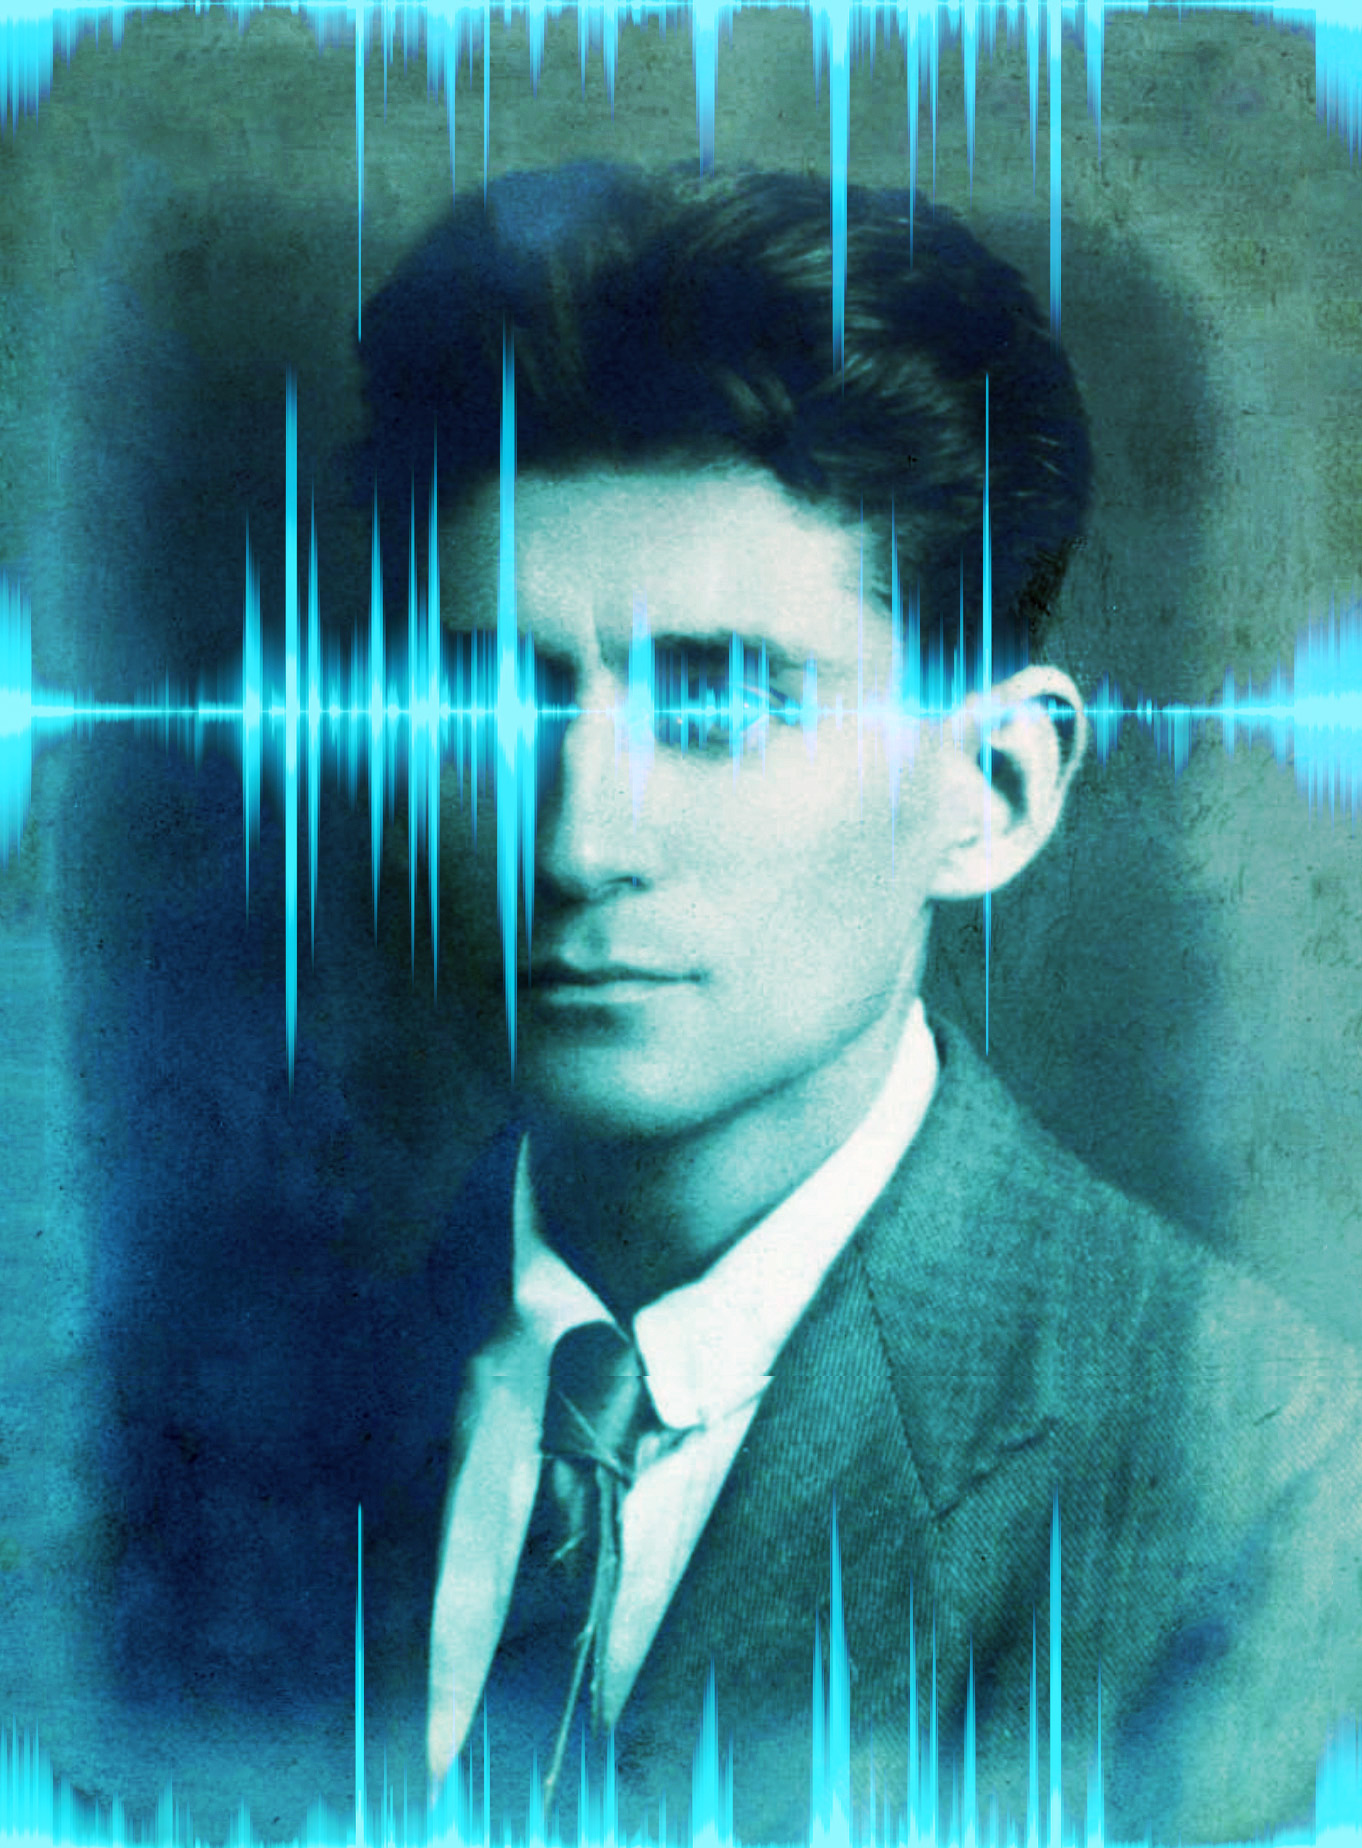 Kafka intersected with sound waves.